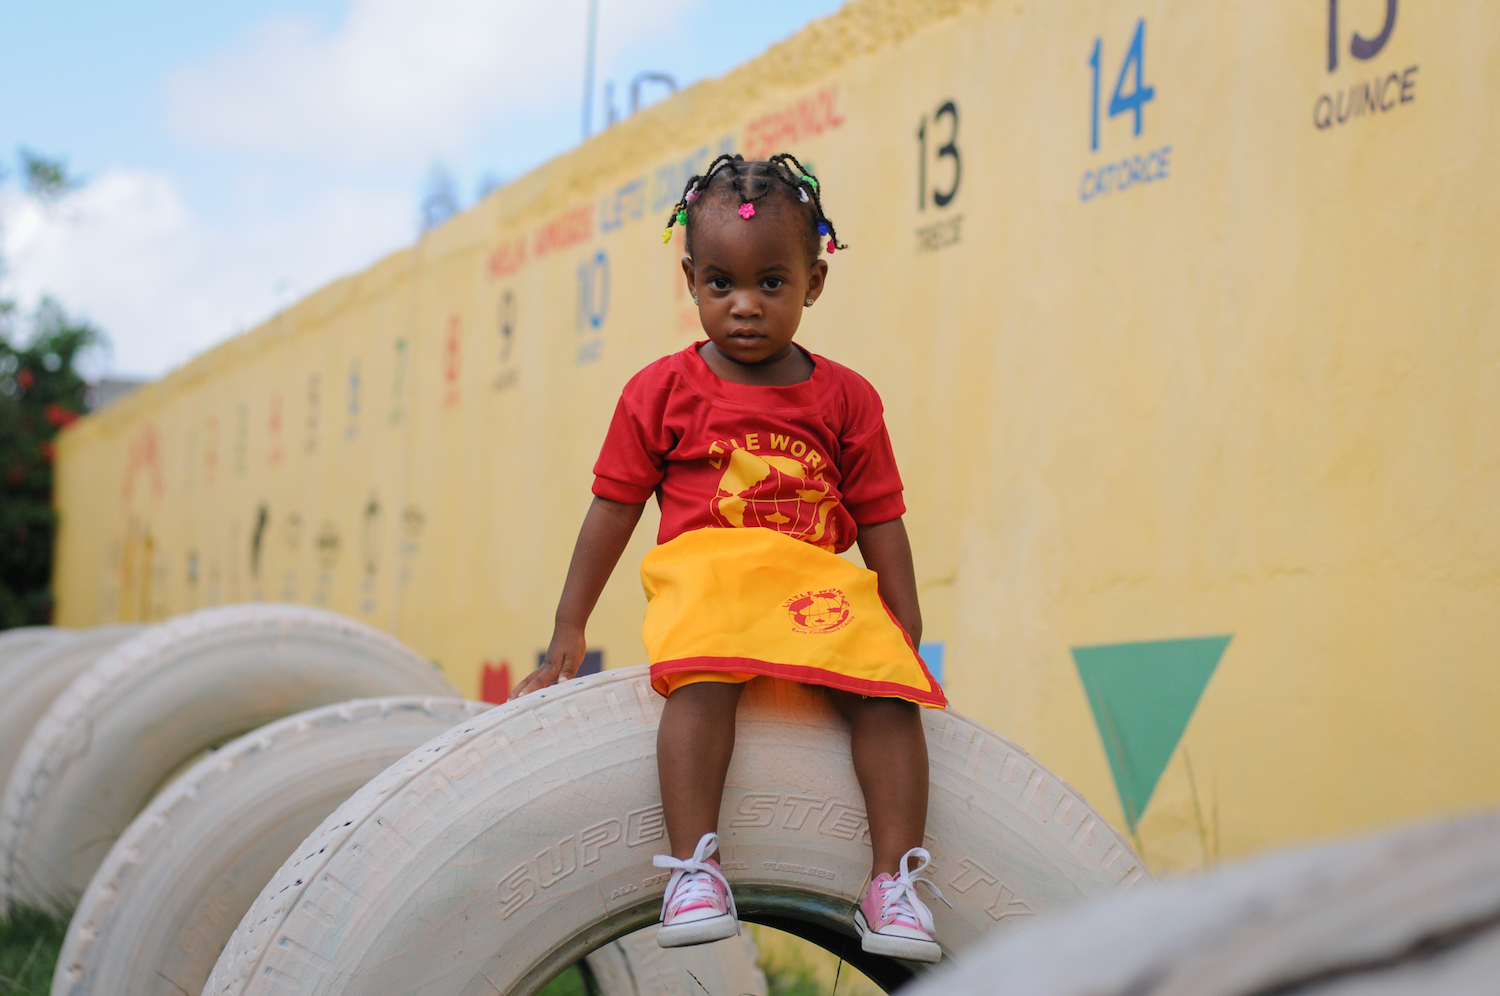 unicef early moments matter for every child